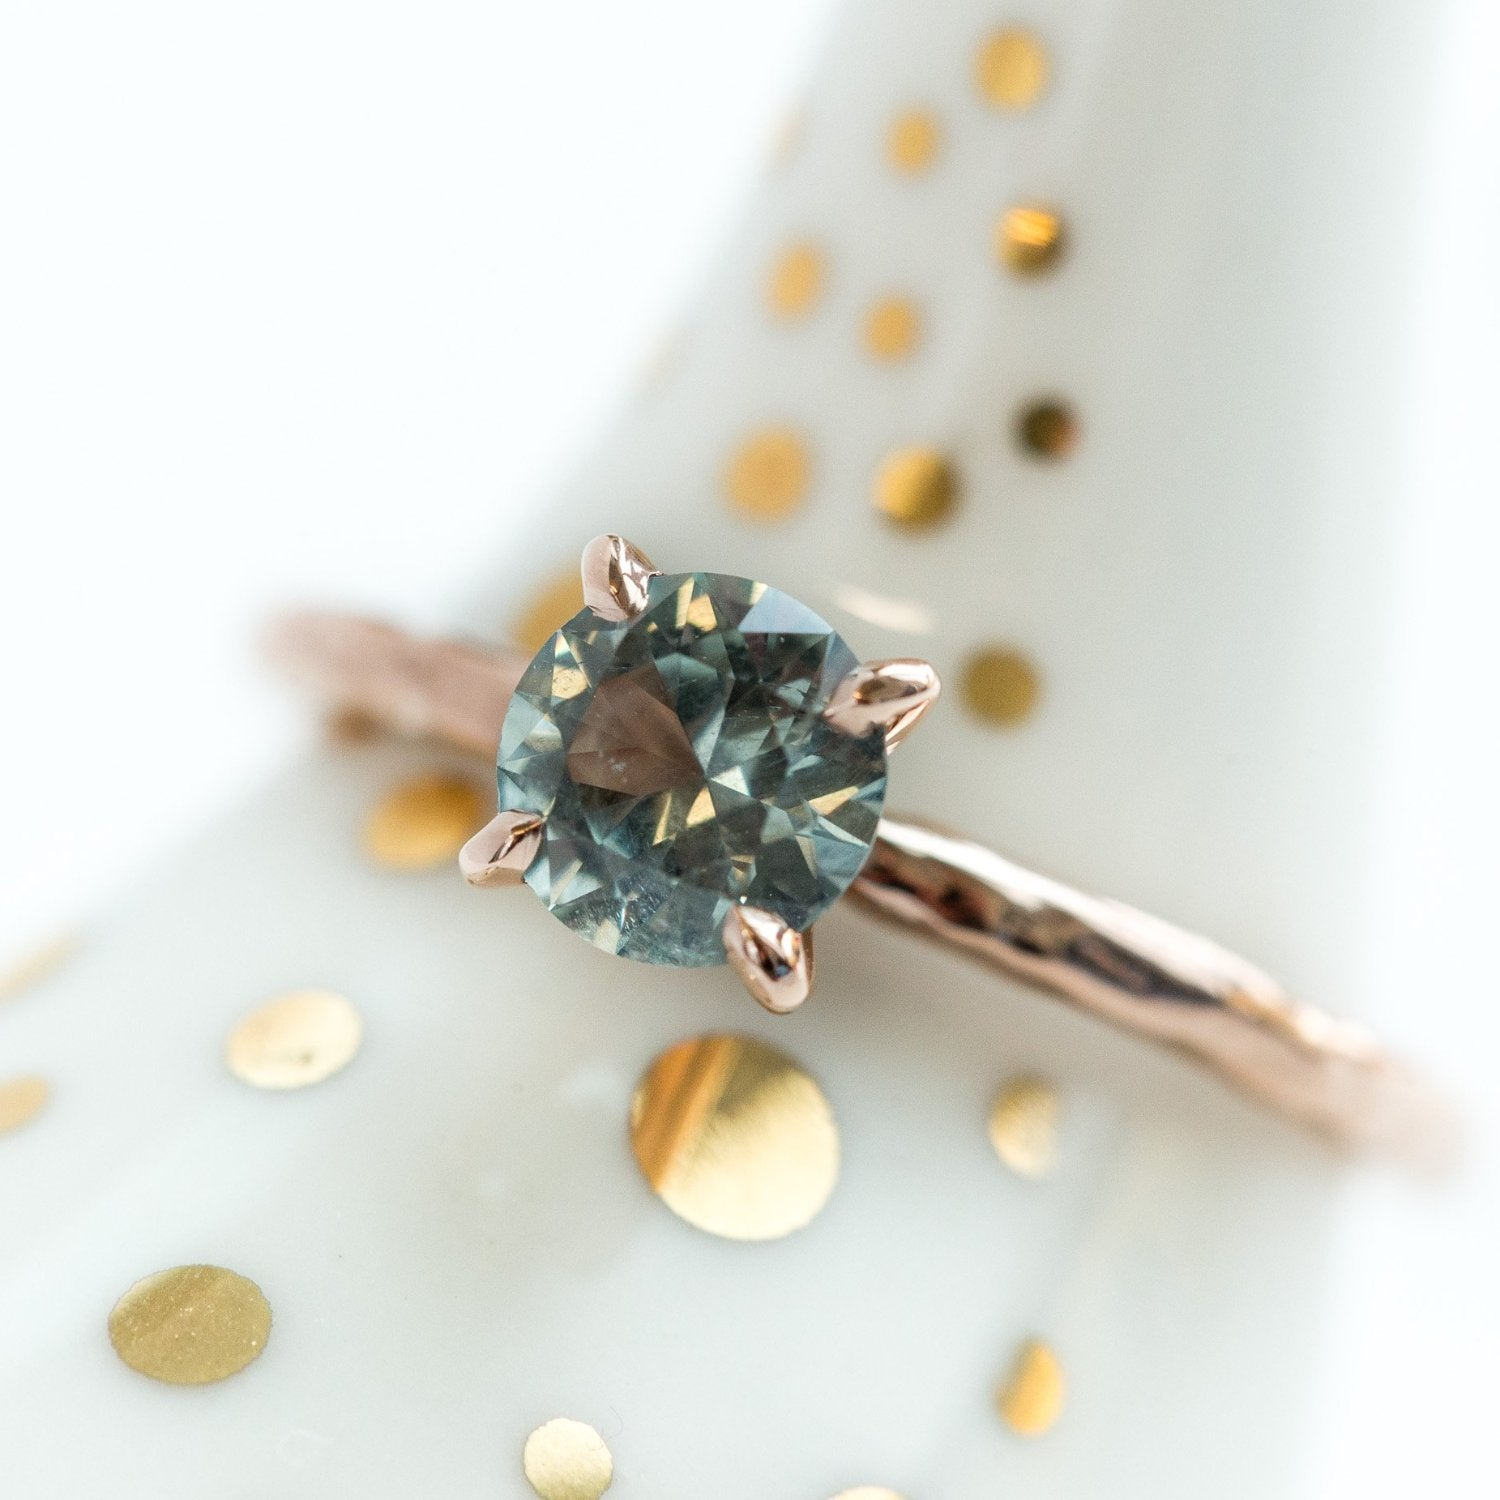 078ct Light Blue Green Montana Sapphire Solitaire Ring Organic